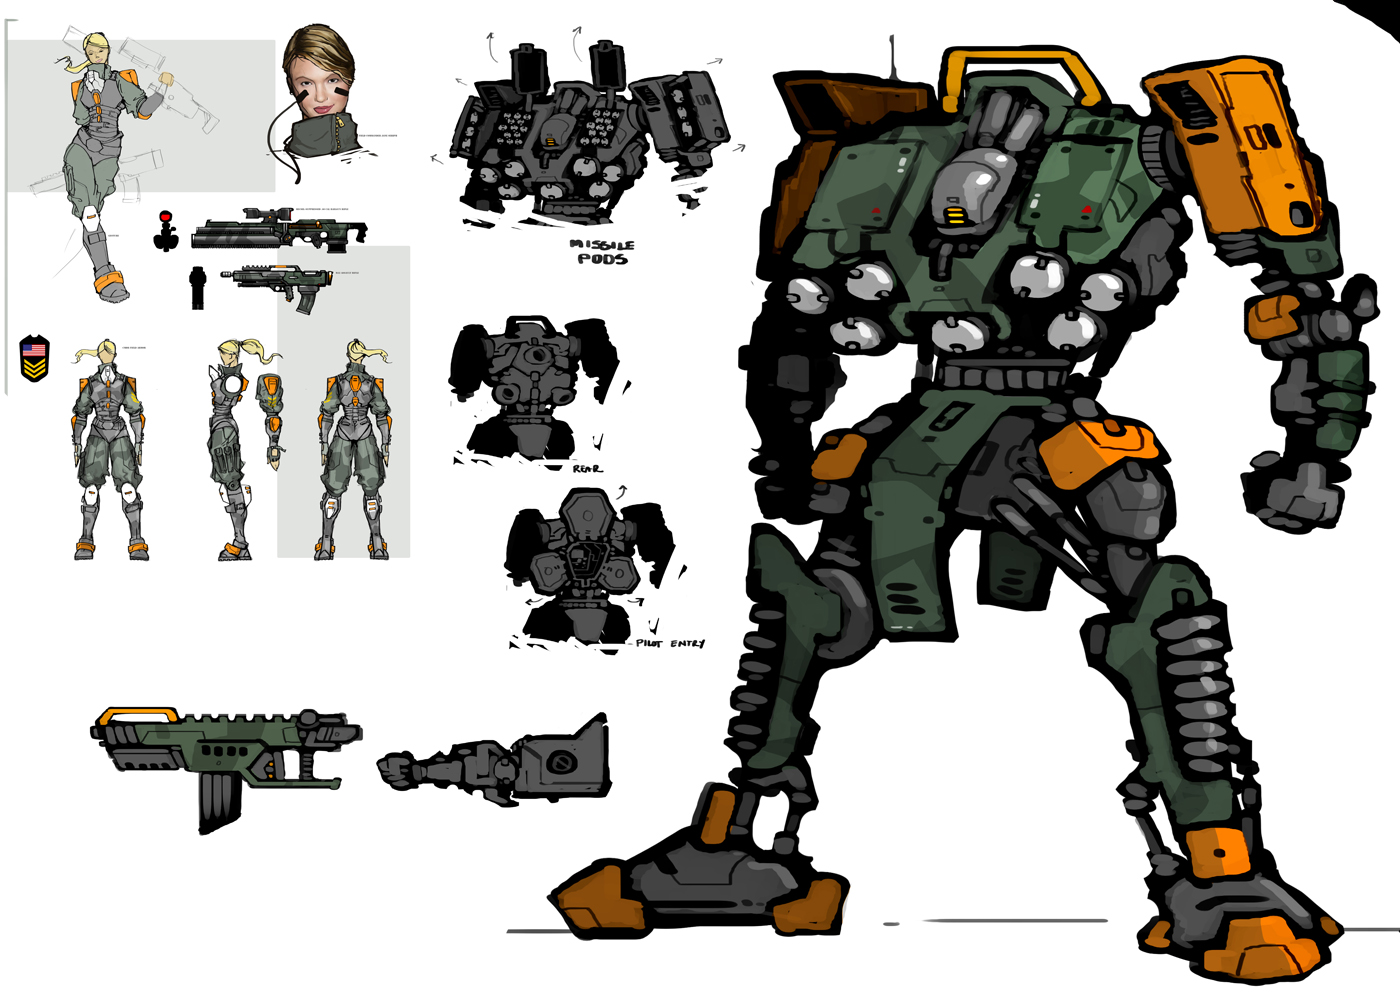 The Art Of Brandon Gillam Toy Soldiers Concept Art